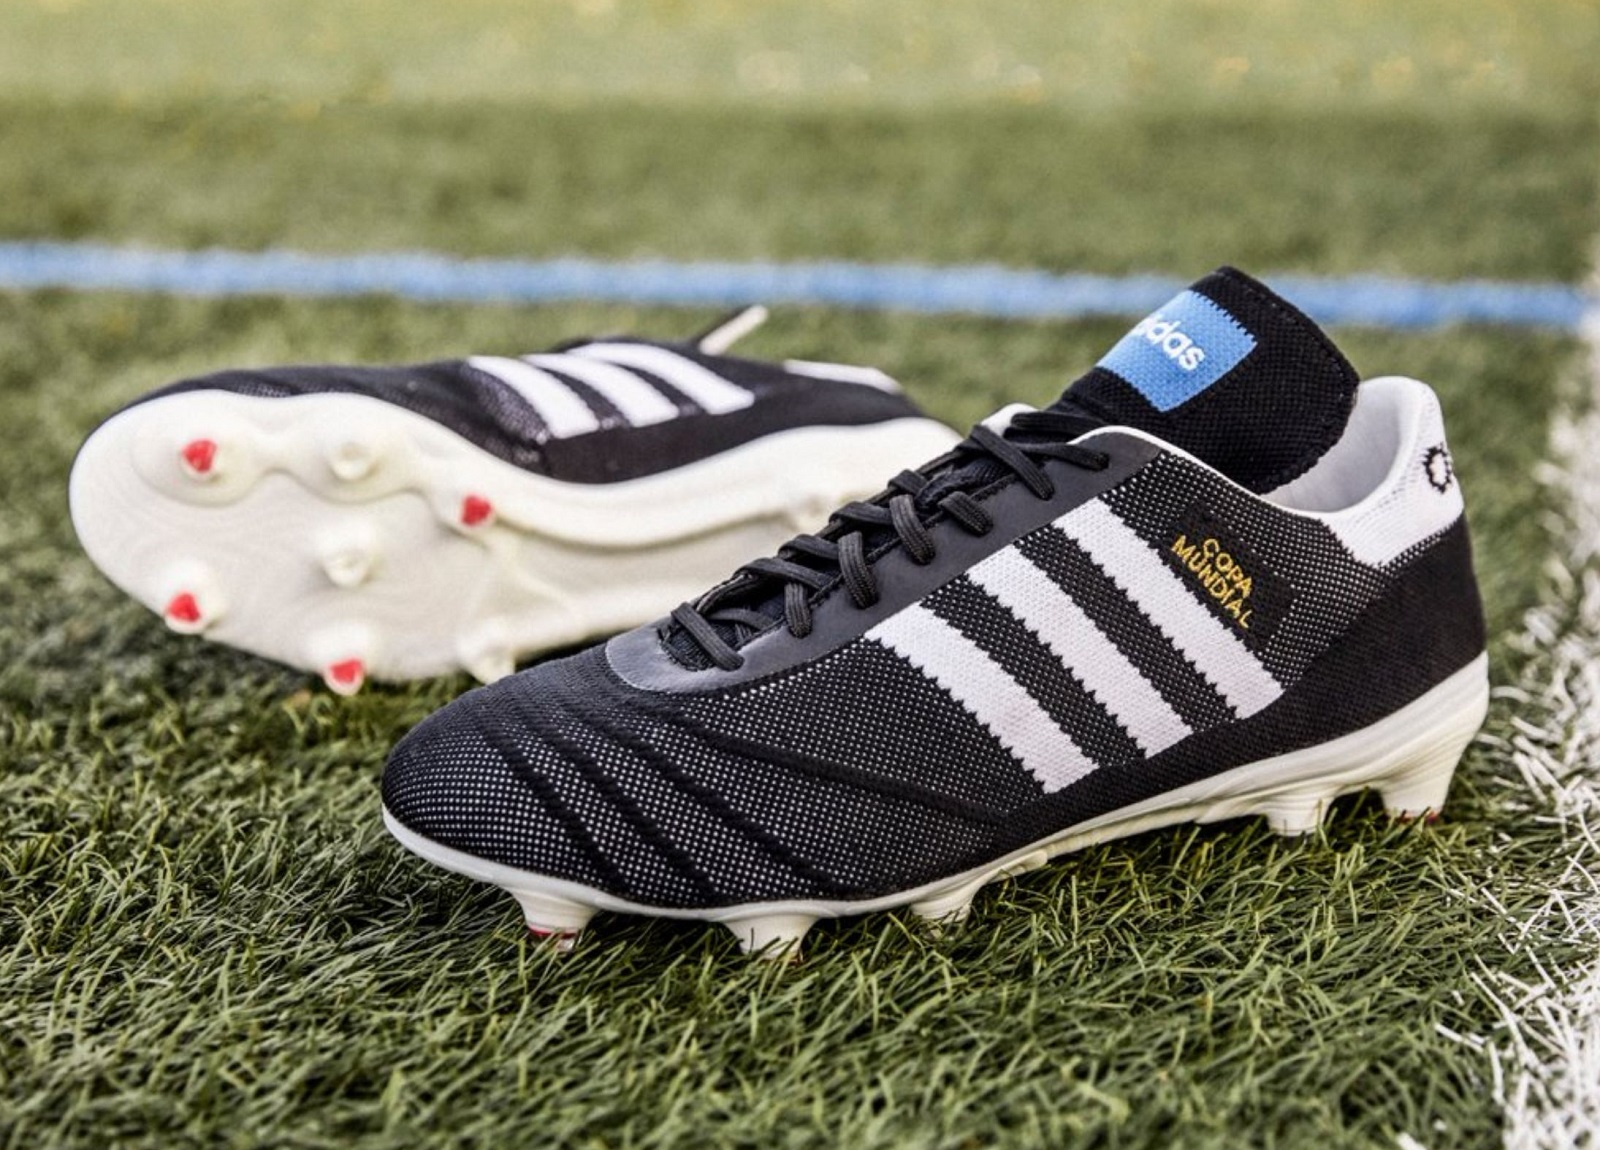 adidas COPA70 Released To Celebrate 70th Anniversary